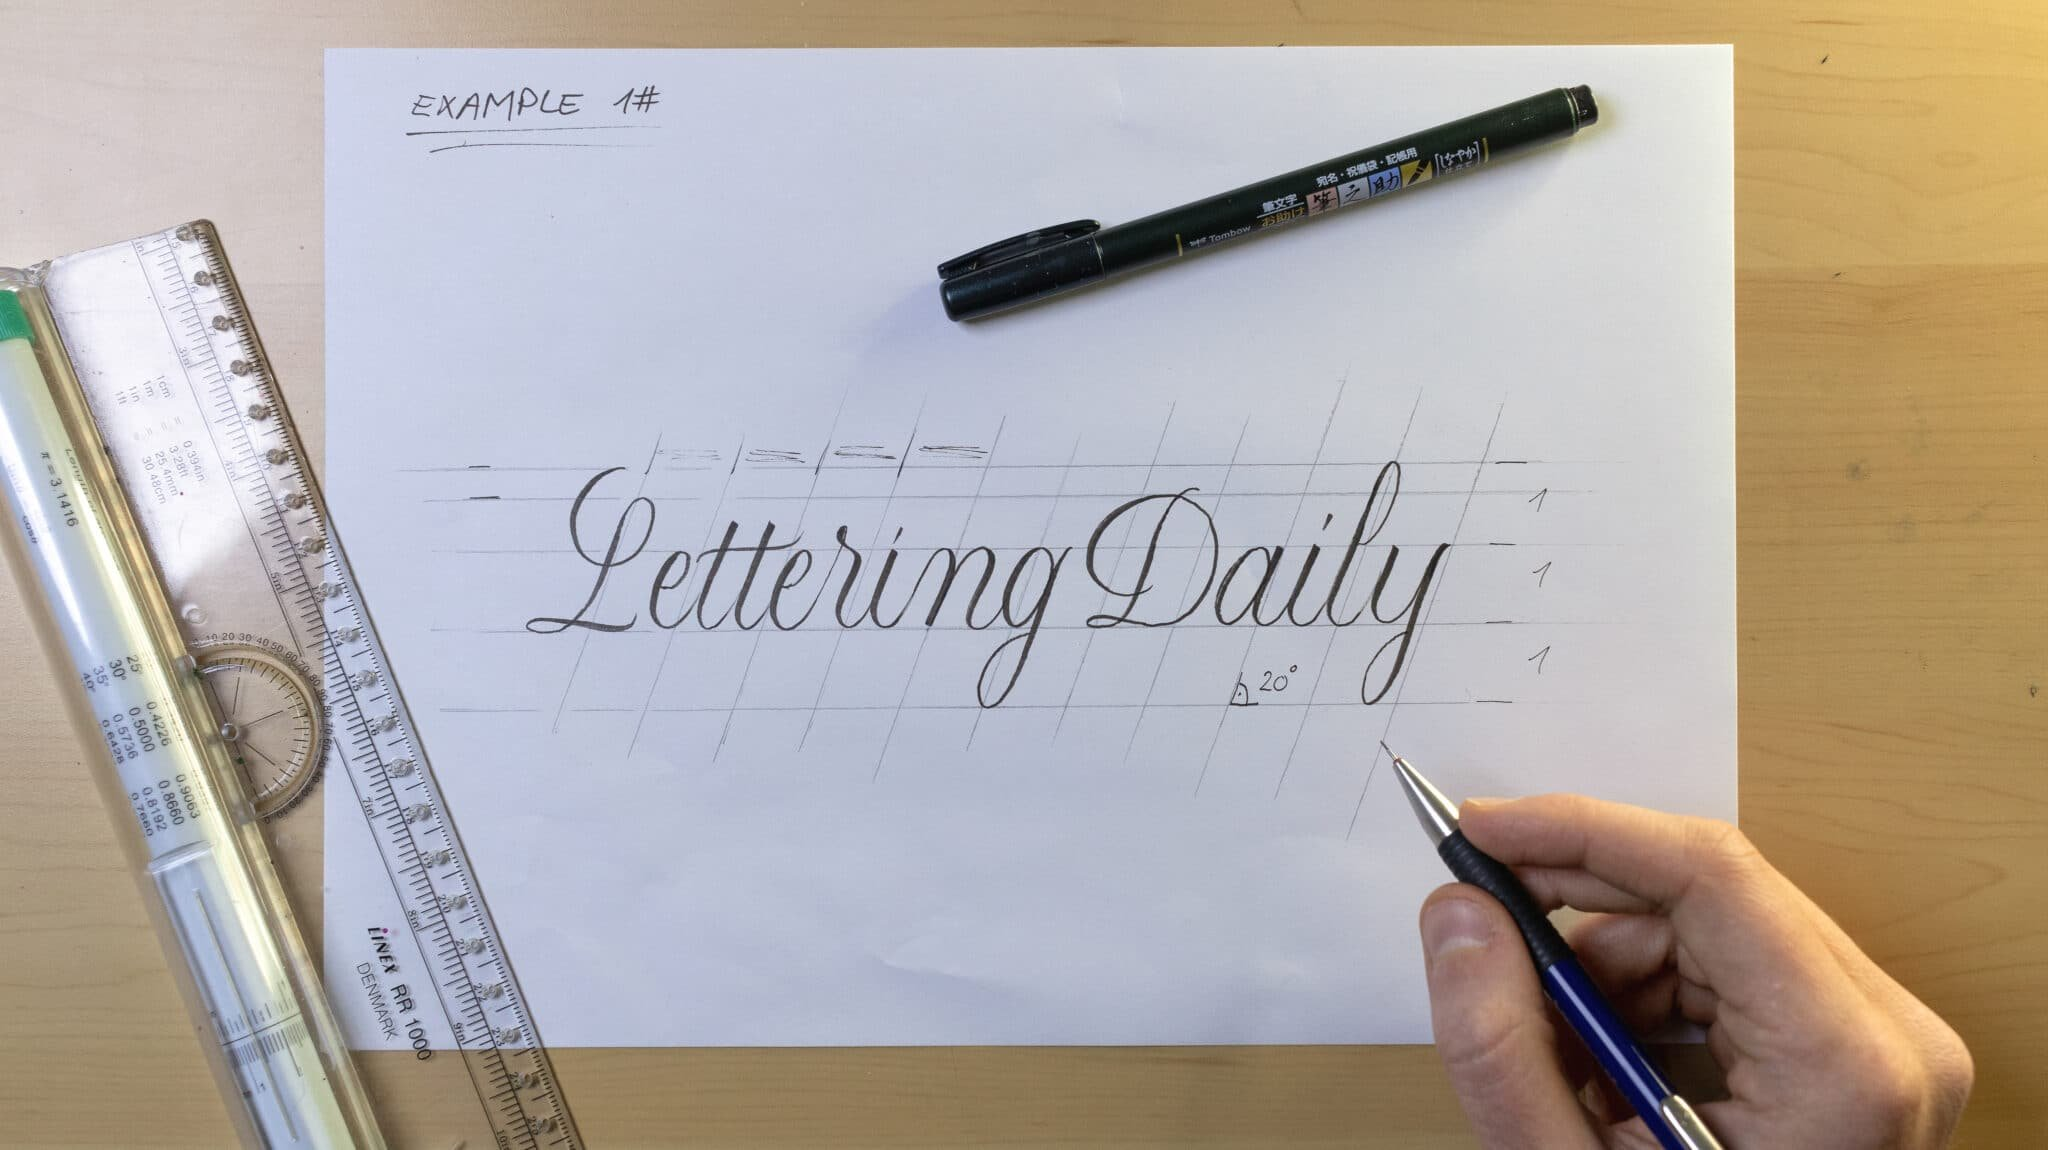 How To Make Calligraphy Guidelines Image 11 - Lettering Daily